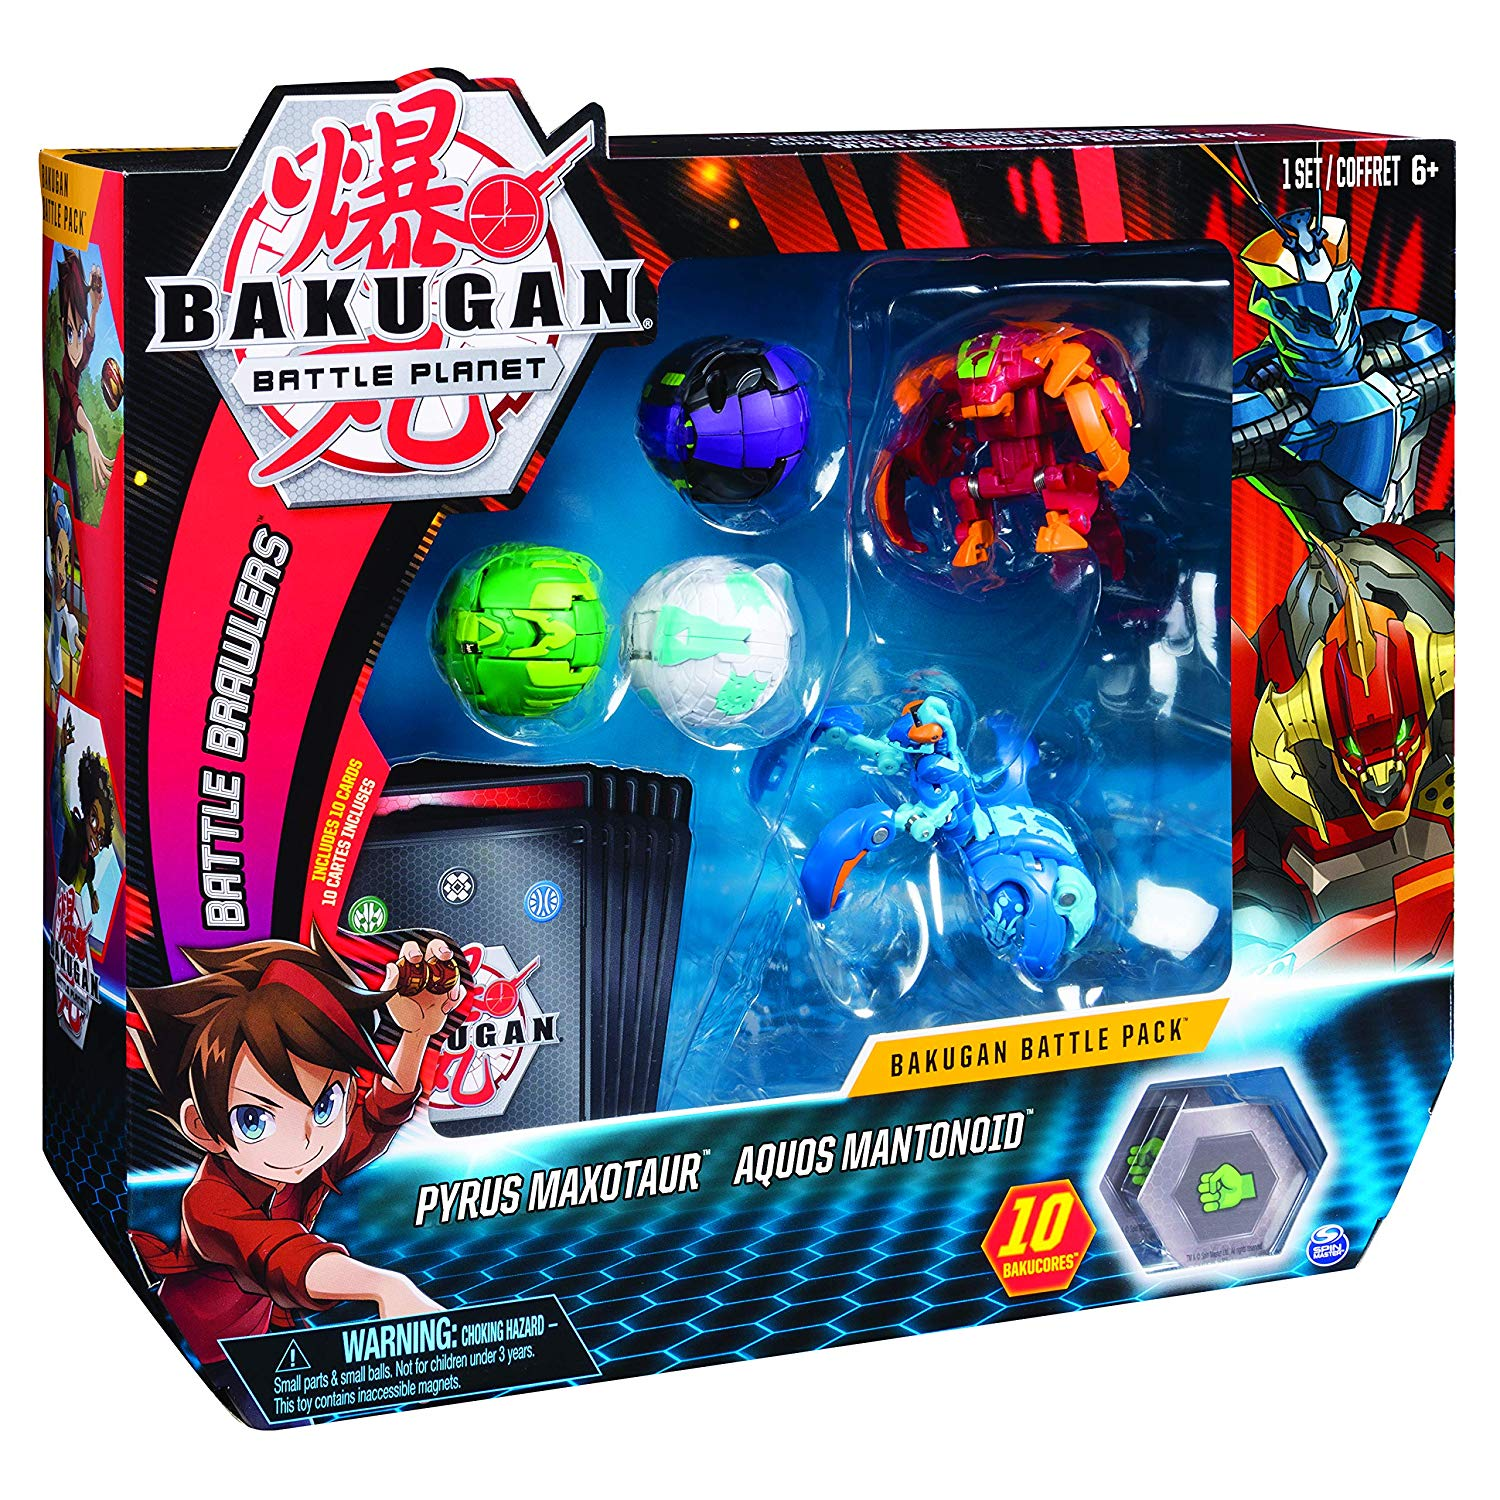 Bakugan Battle Pack Pyrus Maxotaur Aquos Mantanoid